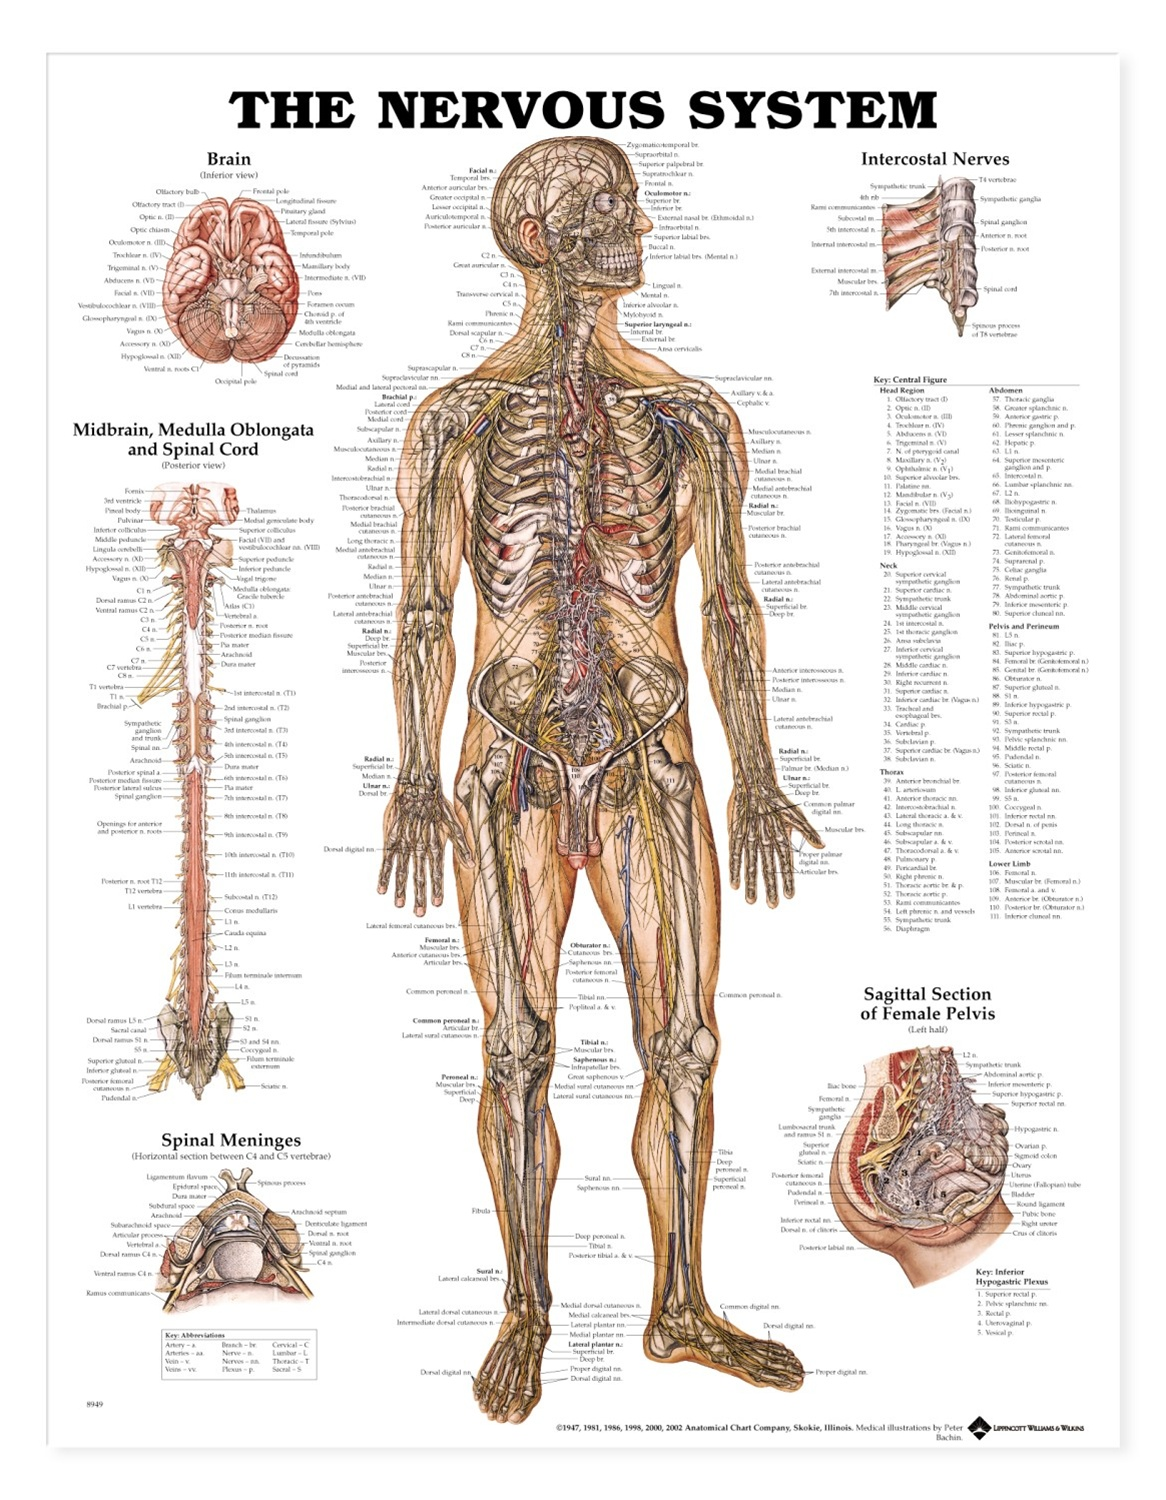 Human nervous system anatomical chart anatomy models and